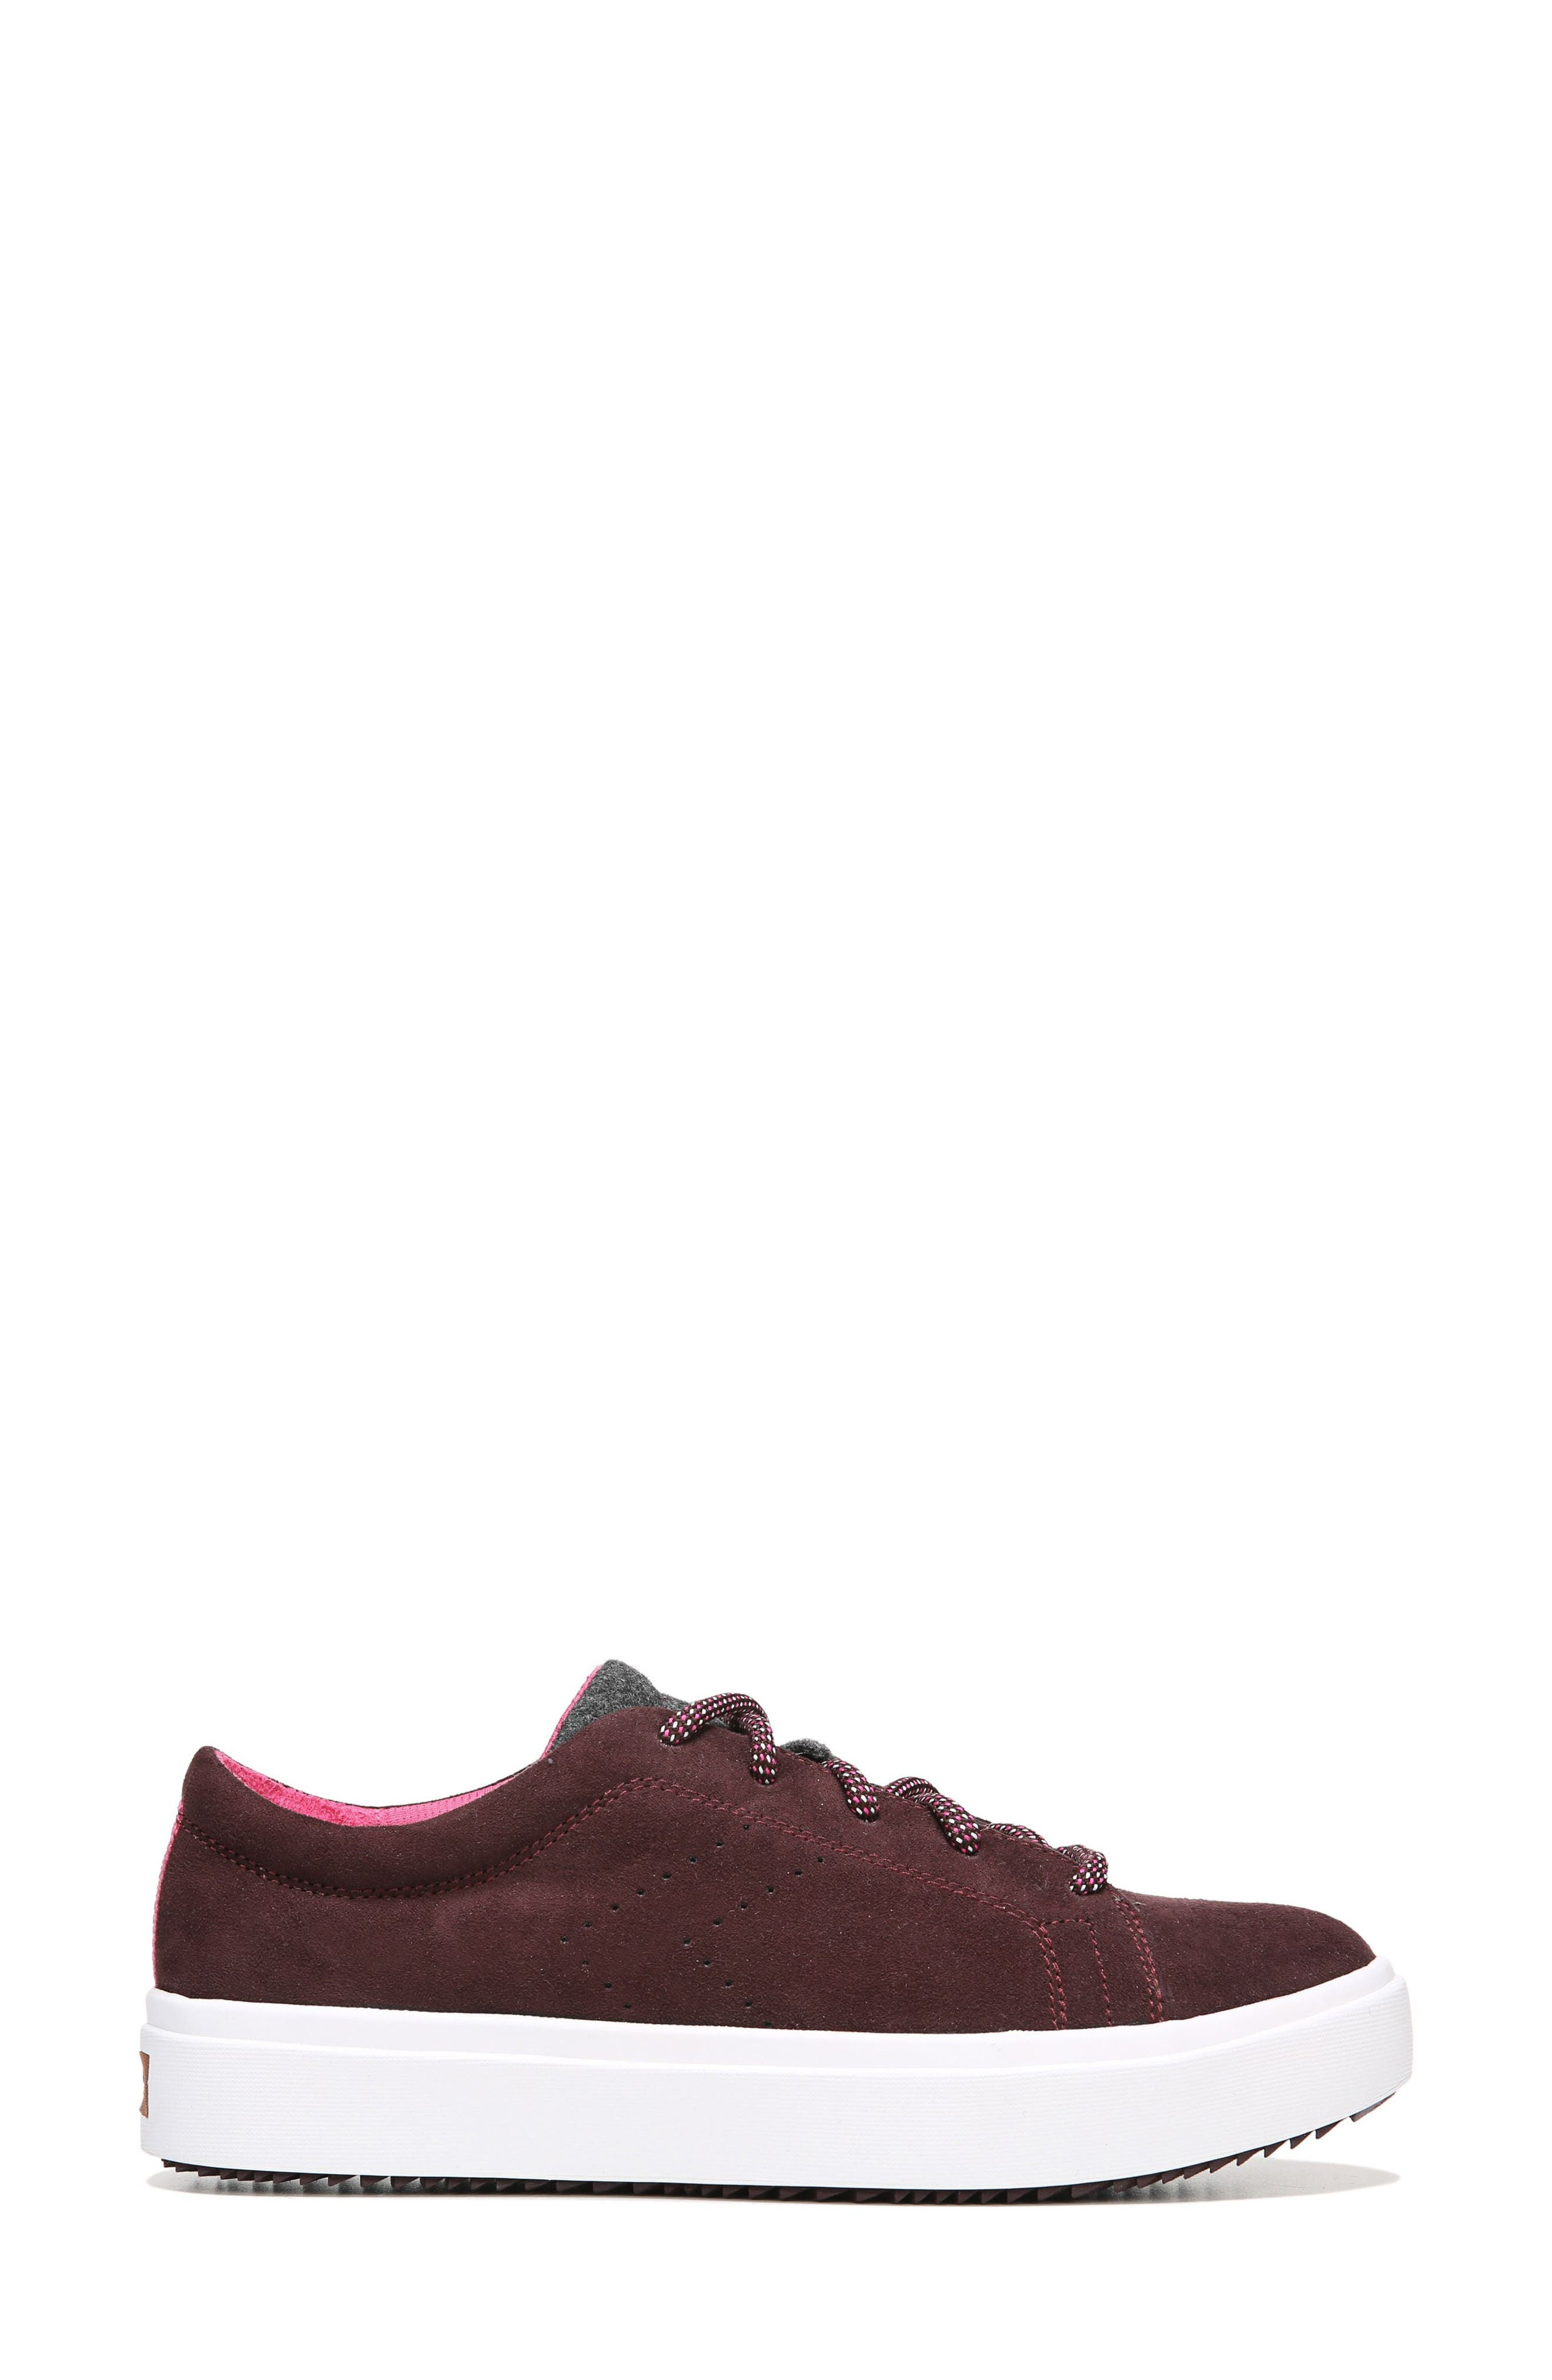 Wander Sneaker,                             Alternate thumbnail 3, color,                             Merlot Fabric